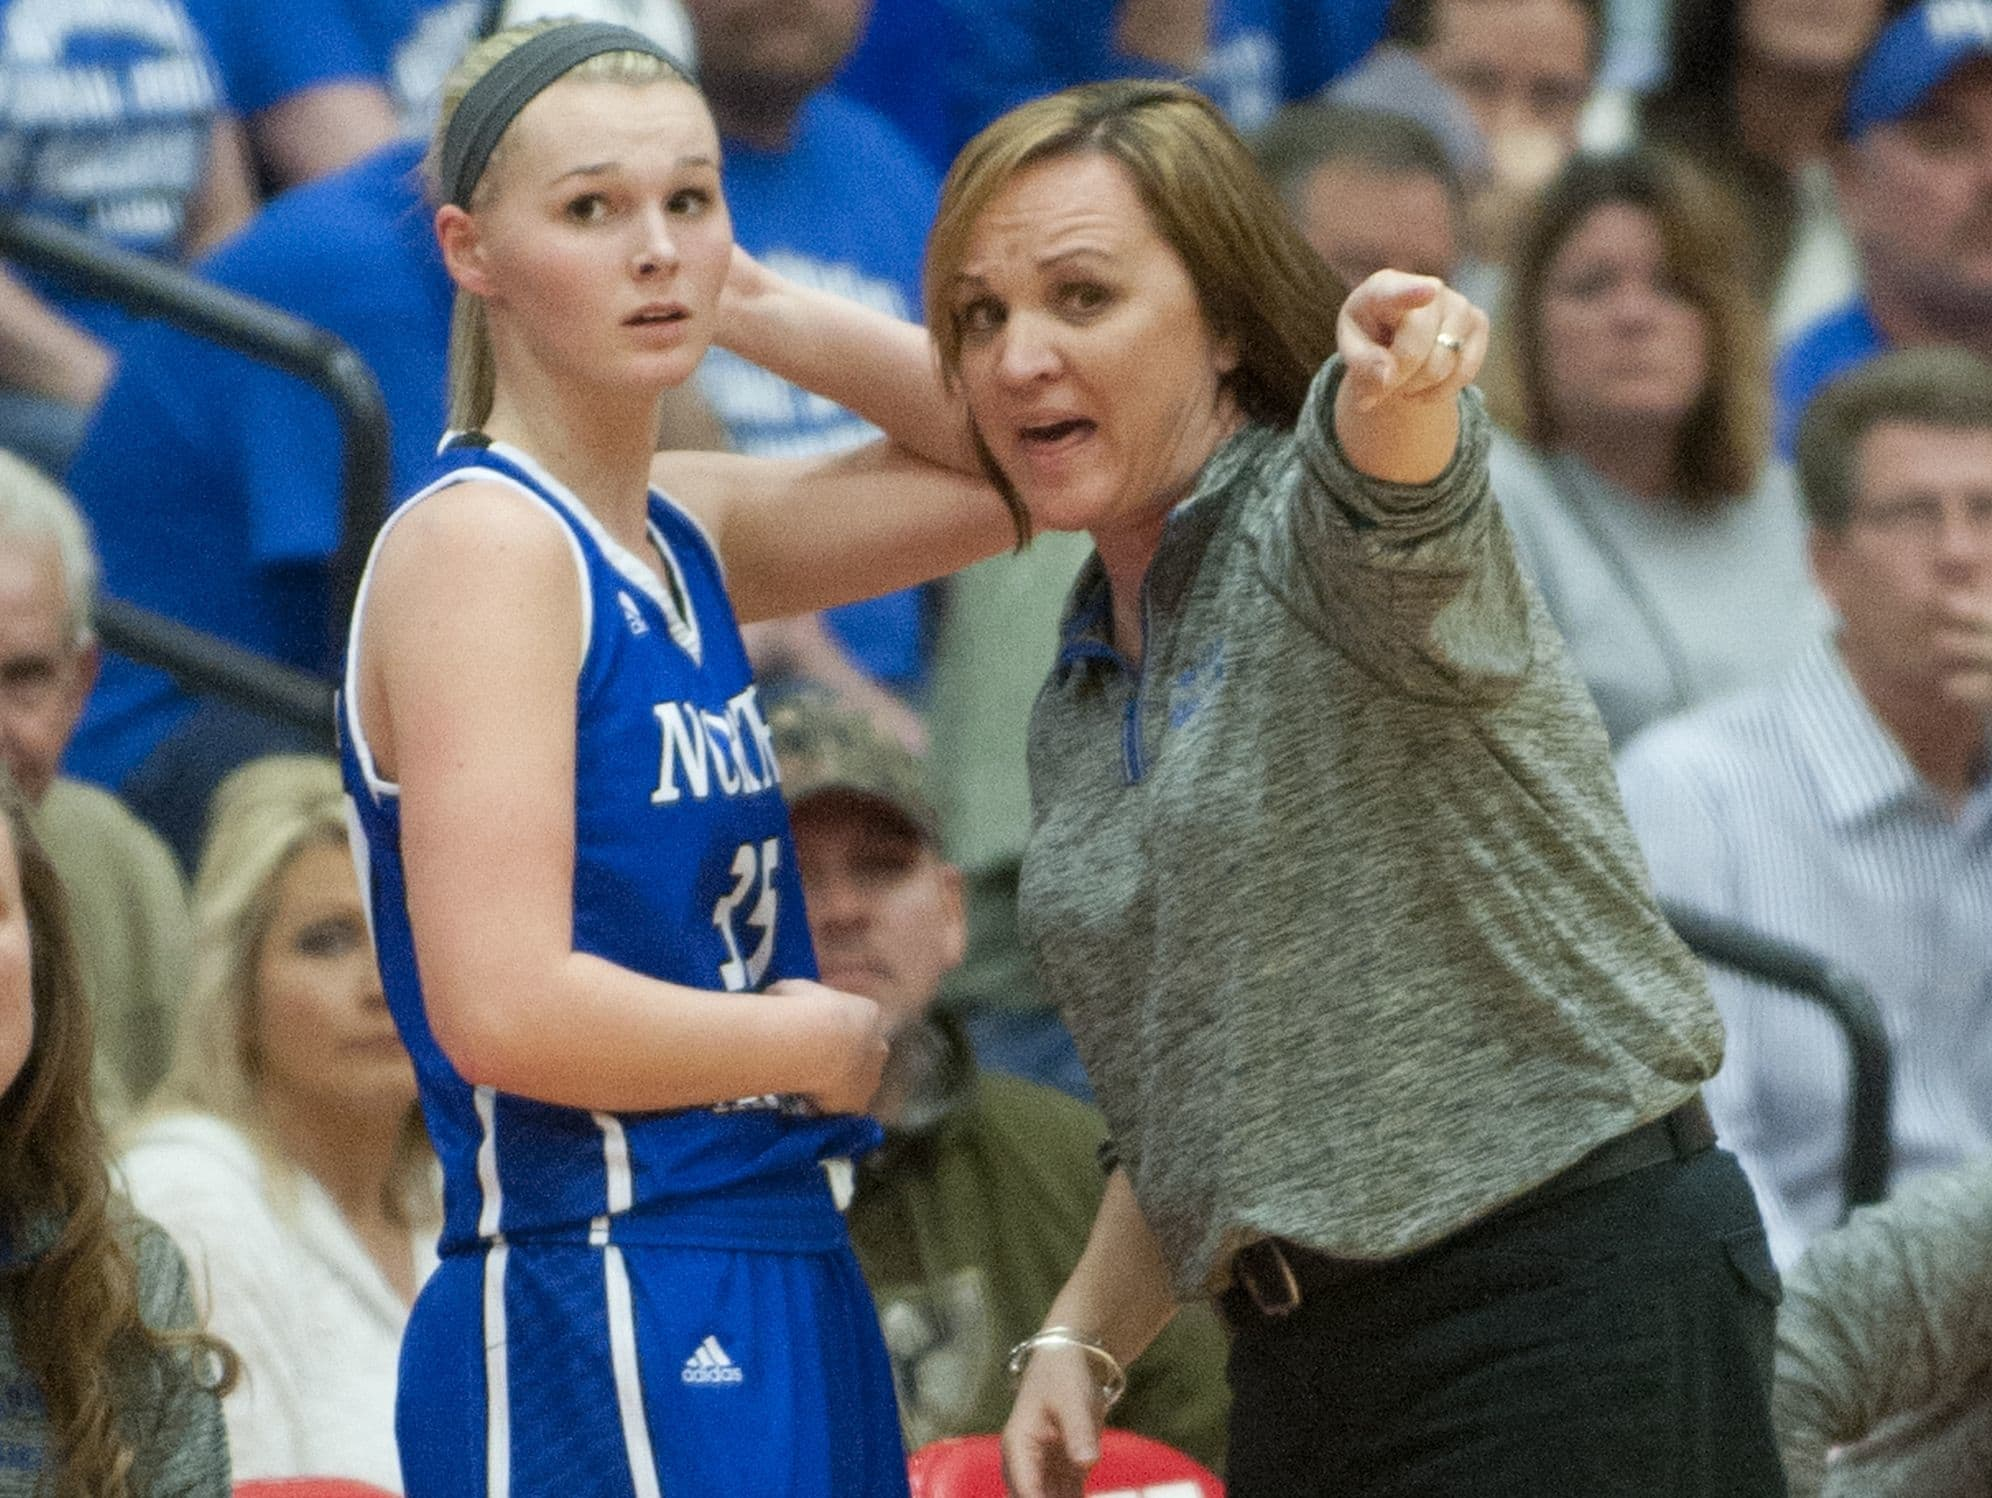 North Harrison guard Stevi Burns gets some instructions from North Harrison head basketball coach Missy Voyles during the game. 18 February 2017